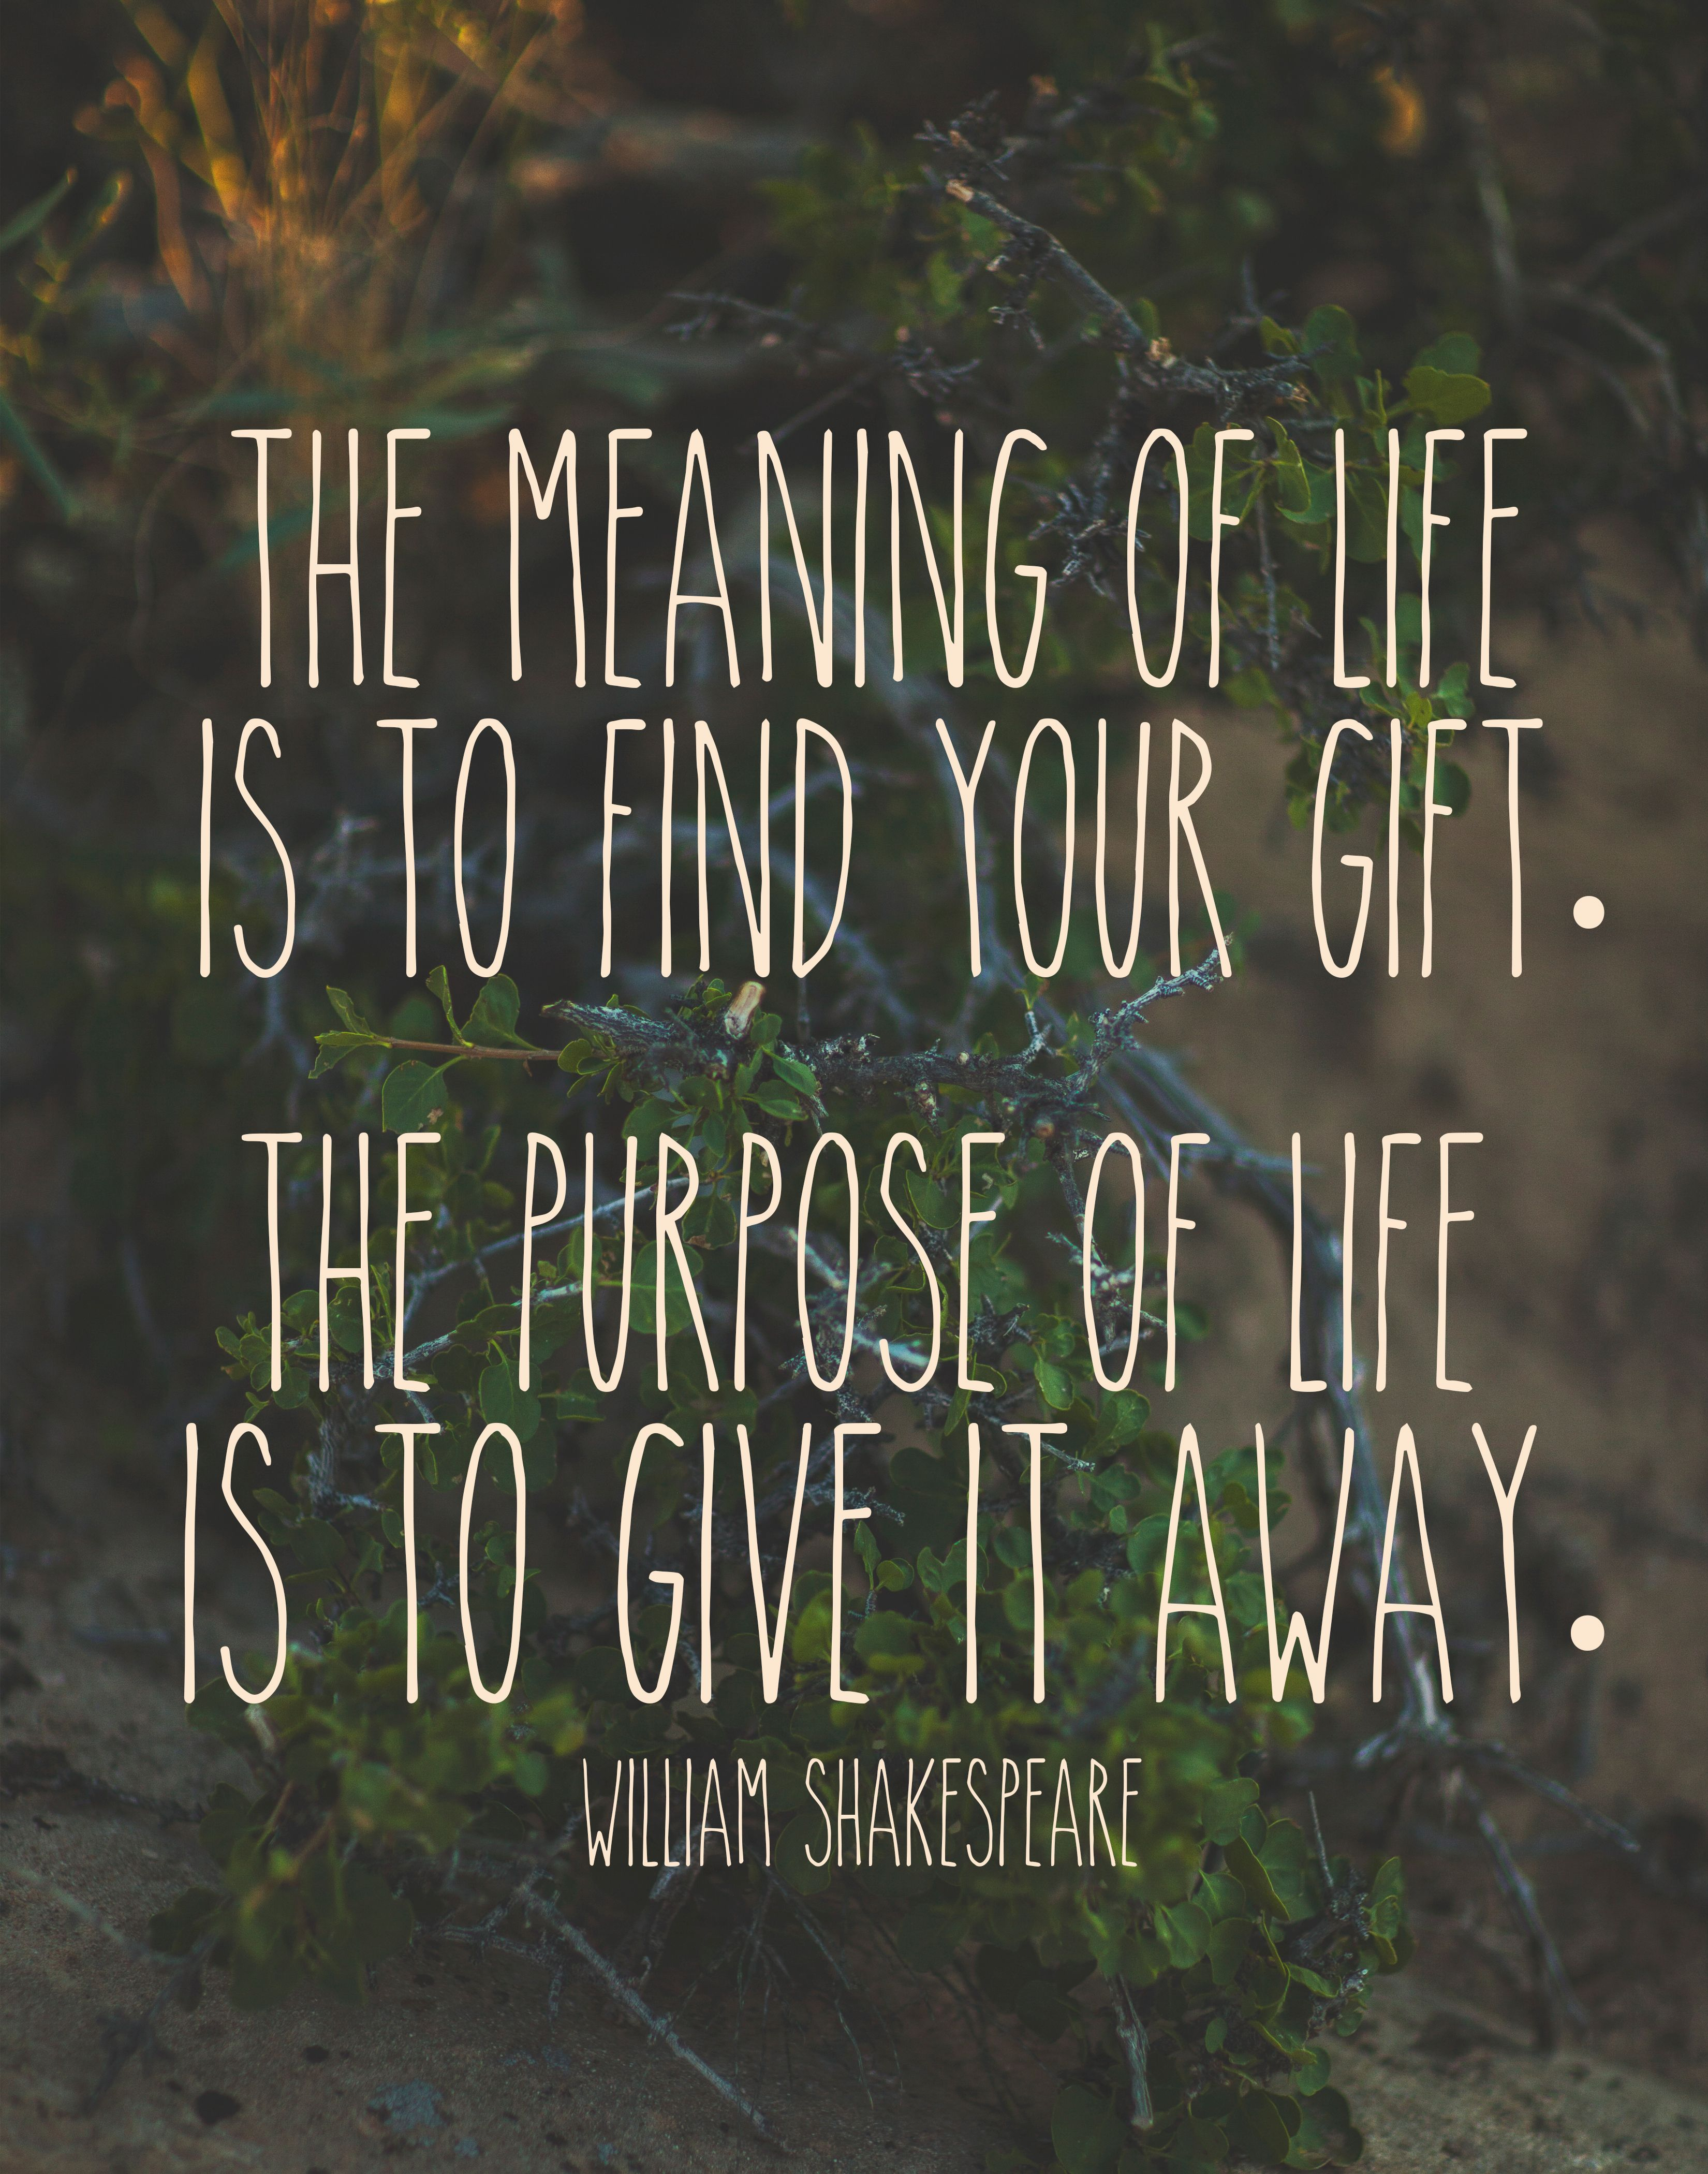 Shakespeare Life Quotes The Meaning Of Life Is To Find Your Giftthe Purpose Of Life Is